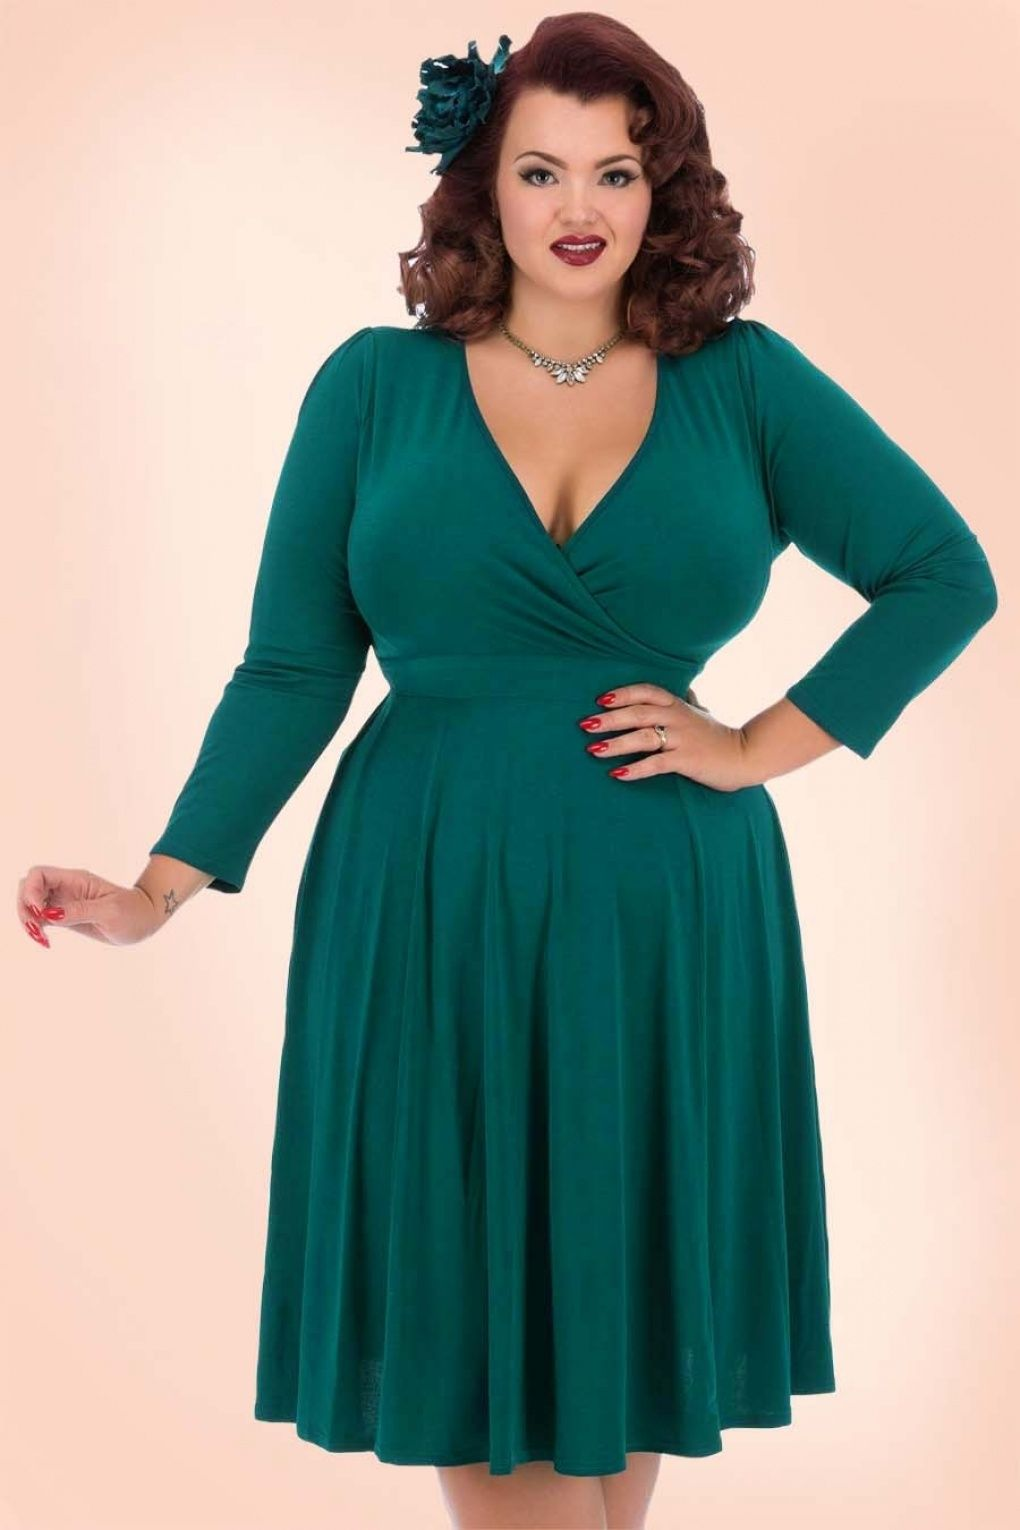 This50s Lyra Long Sleeves Dressis perfect for every occasion! ''Who's that lady?!''This flared dress features an elegant V-neckline with wrap over detail for a sexy cleavage and flattering long sleeves. The waist is defined by a fixed tie strap which can be knotted as well at the front as the back of the dress and the A-line skirt is perfect for any bodytype. Made from a comfy, stretchy sea green fabric for a perfect fit. Wear it to the office...